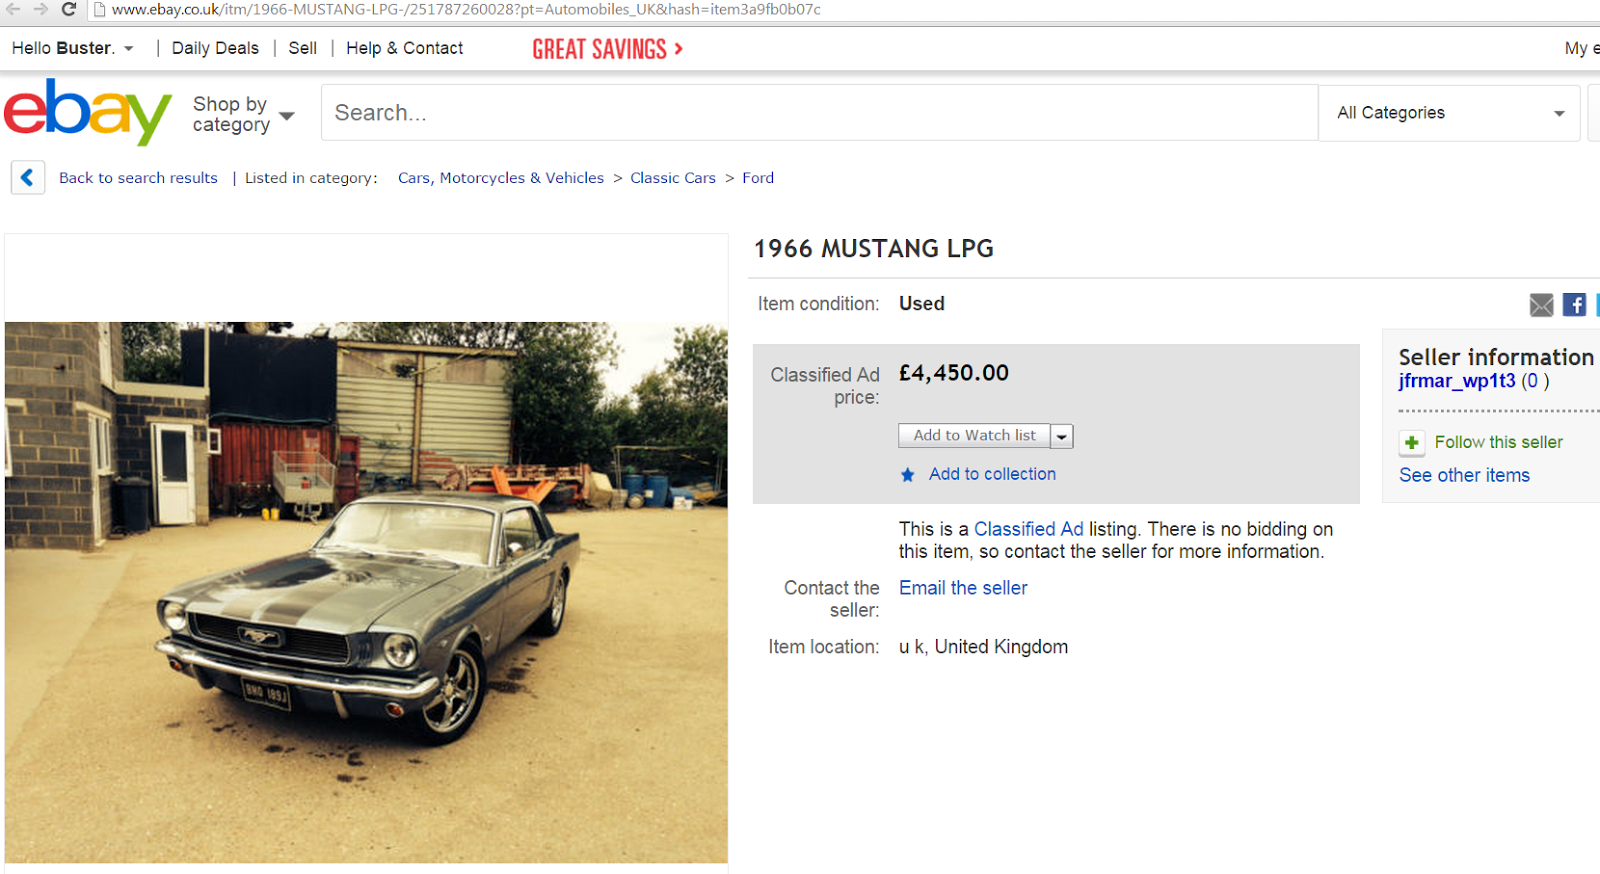 Comfortable Ebay Motors Uk Cars For Sale Images - Classic Cars Ideas ...